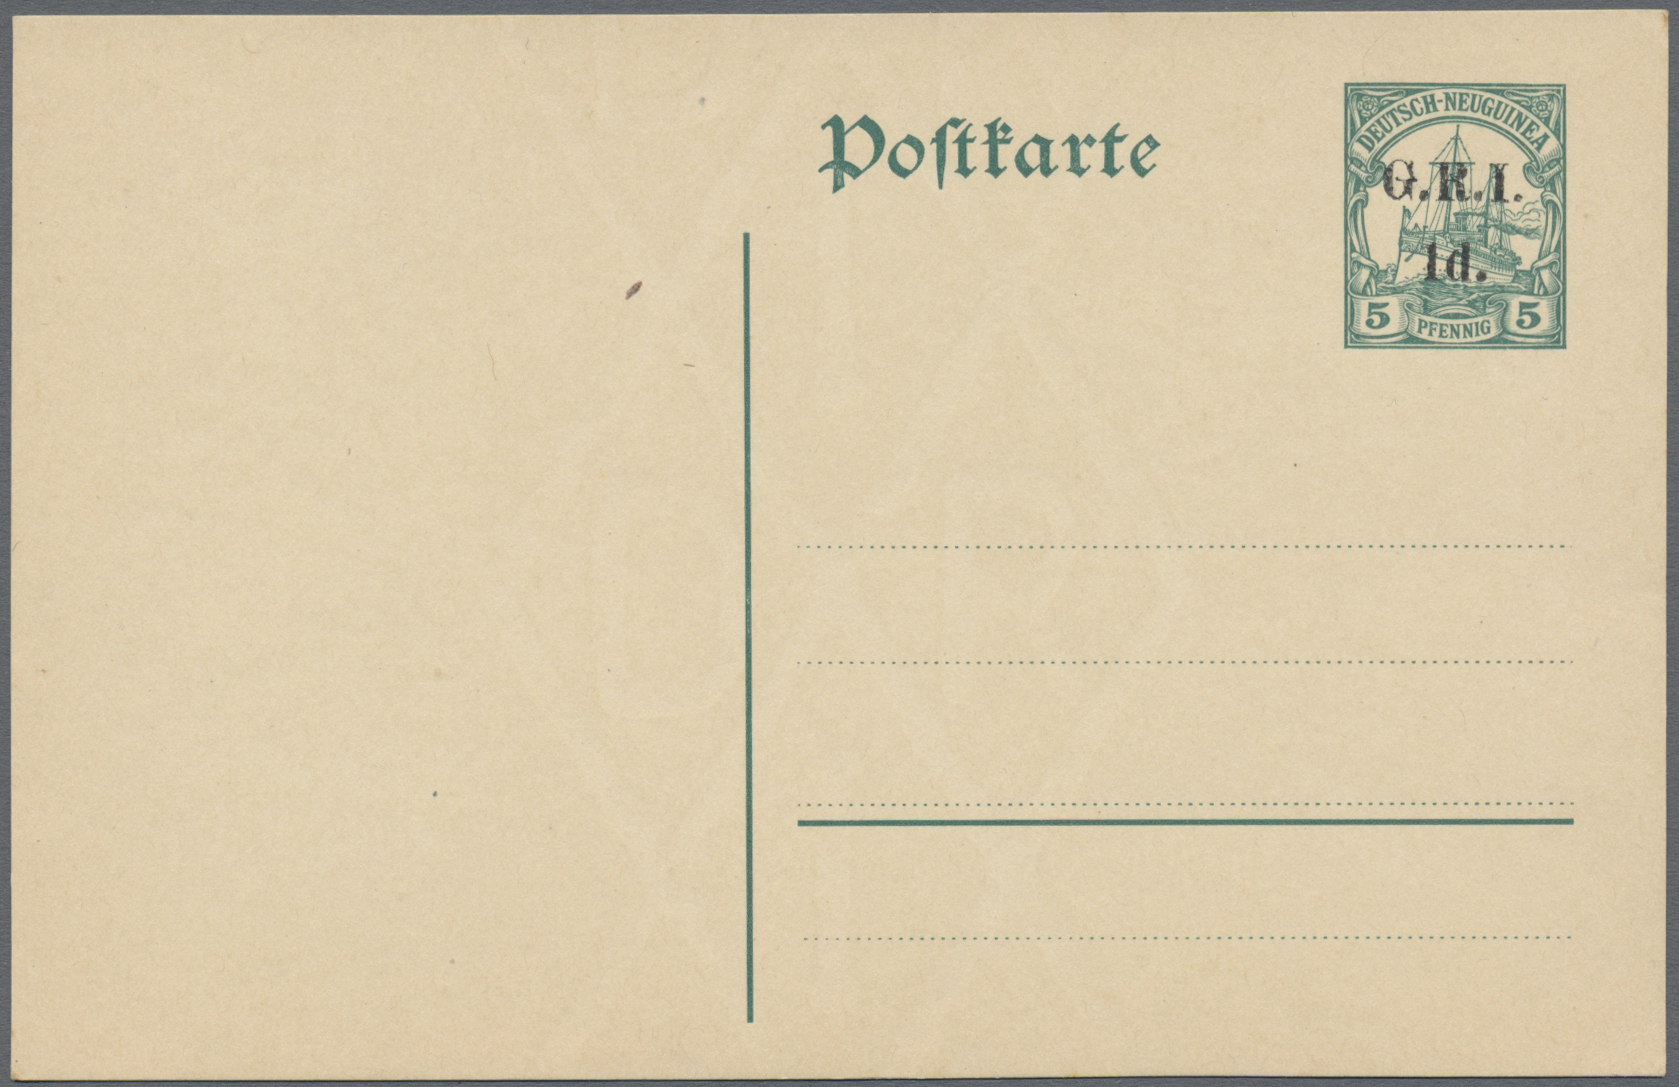 Lot 22624 - Deutsch-Neuguinea - Britische Besetzung  -  Auktionshaus Christoph Gärtner GmbH & Co. KG Sale #44 Germany, Picture Post cards